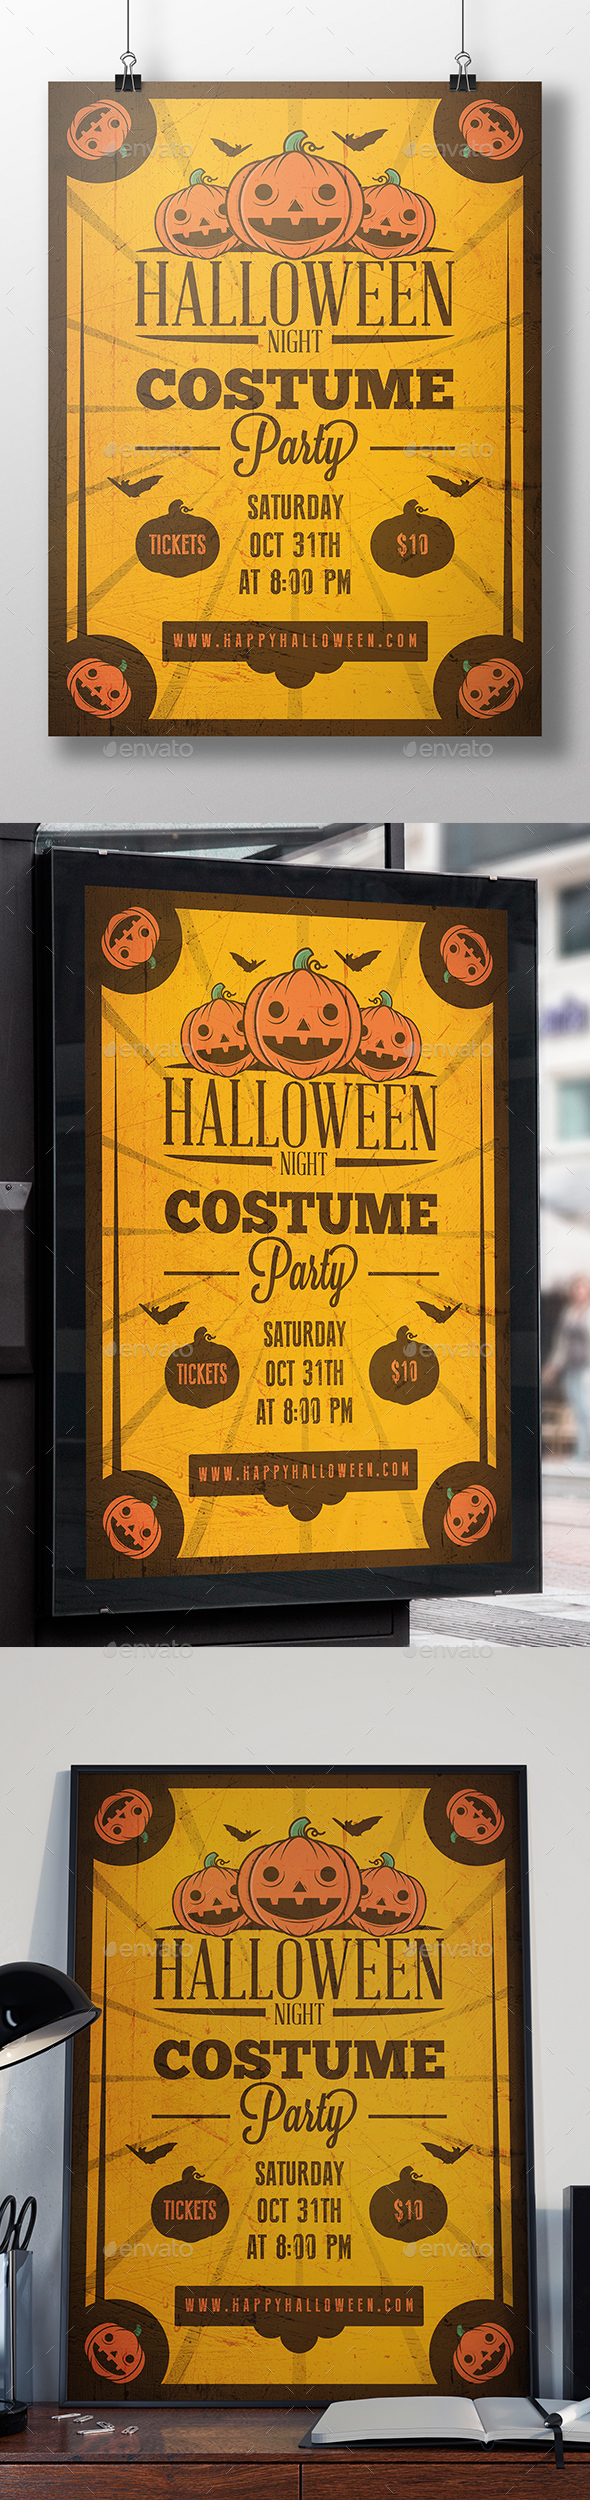 Happy Halloween Flyer Template - Holidays Events